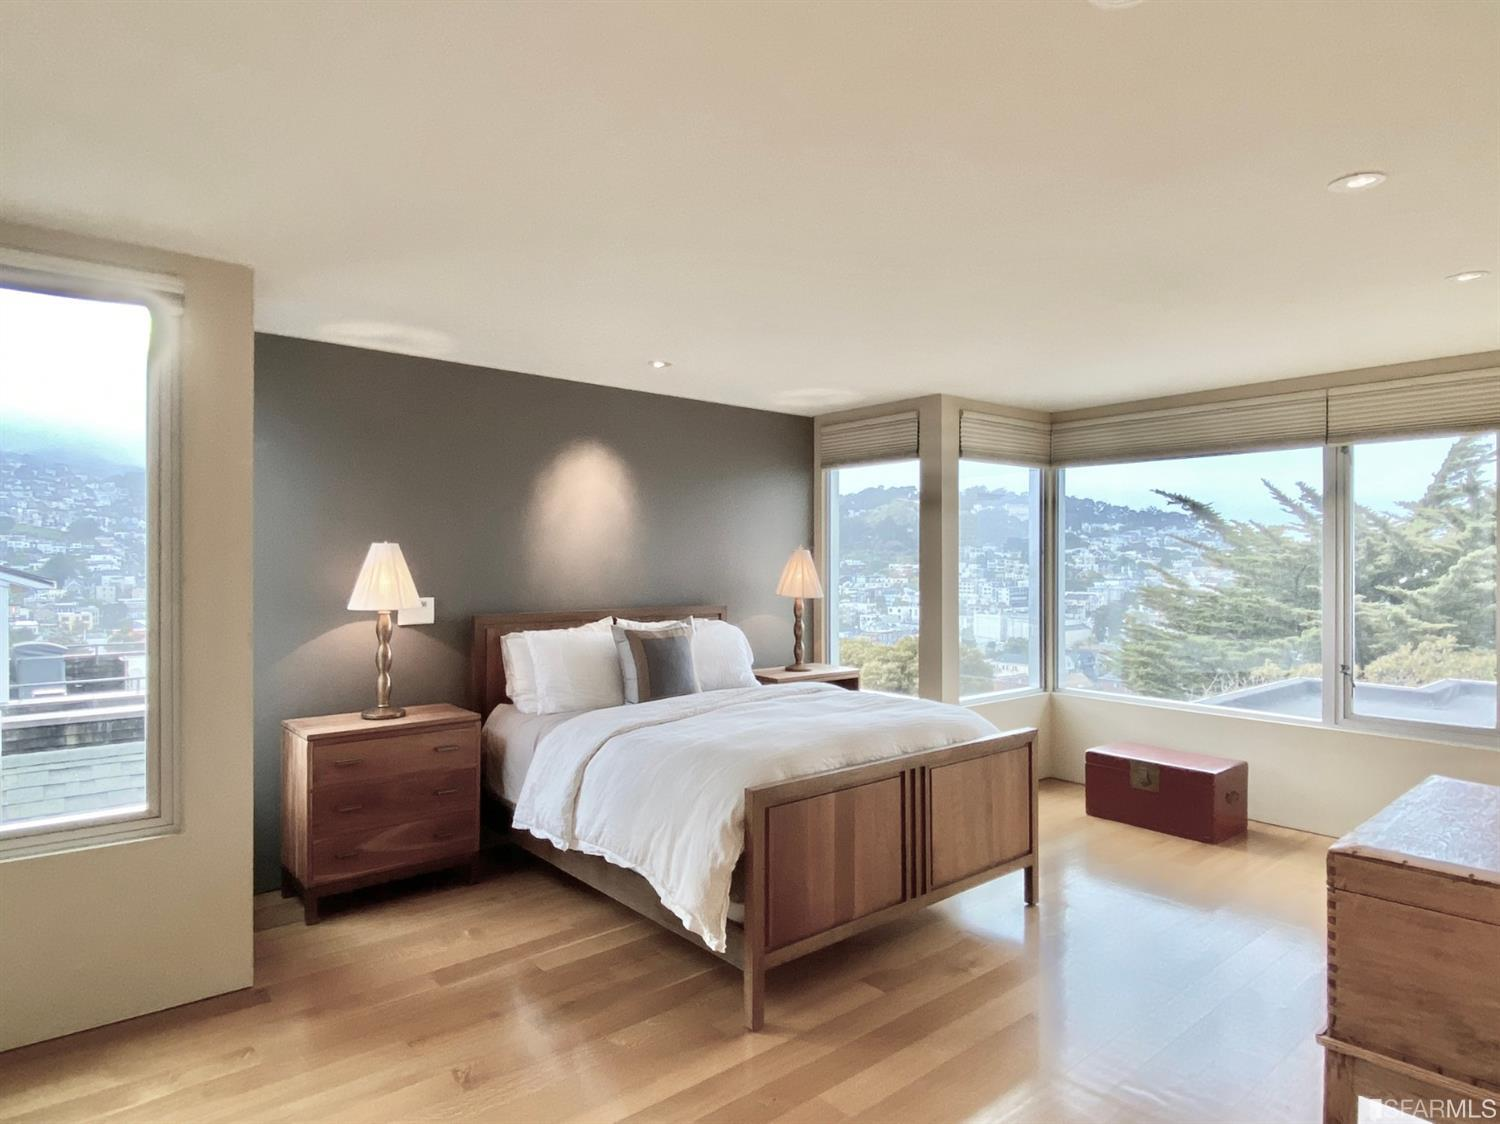 Exceptional master suite with sweeping panoramic views and a wall of custom-fitted closets. Access to roof area which was engine